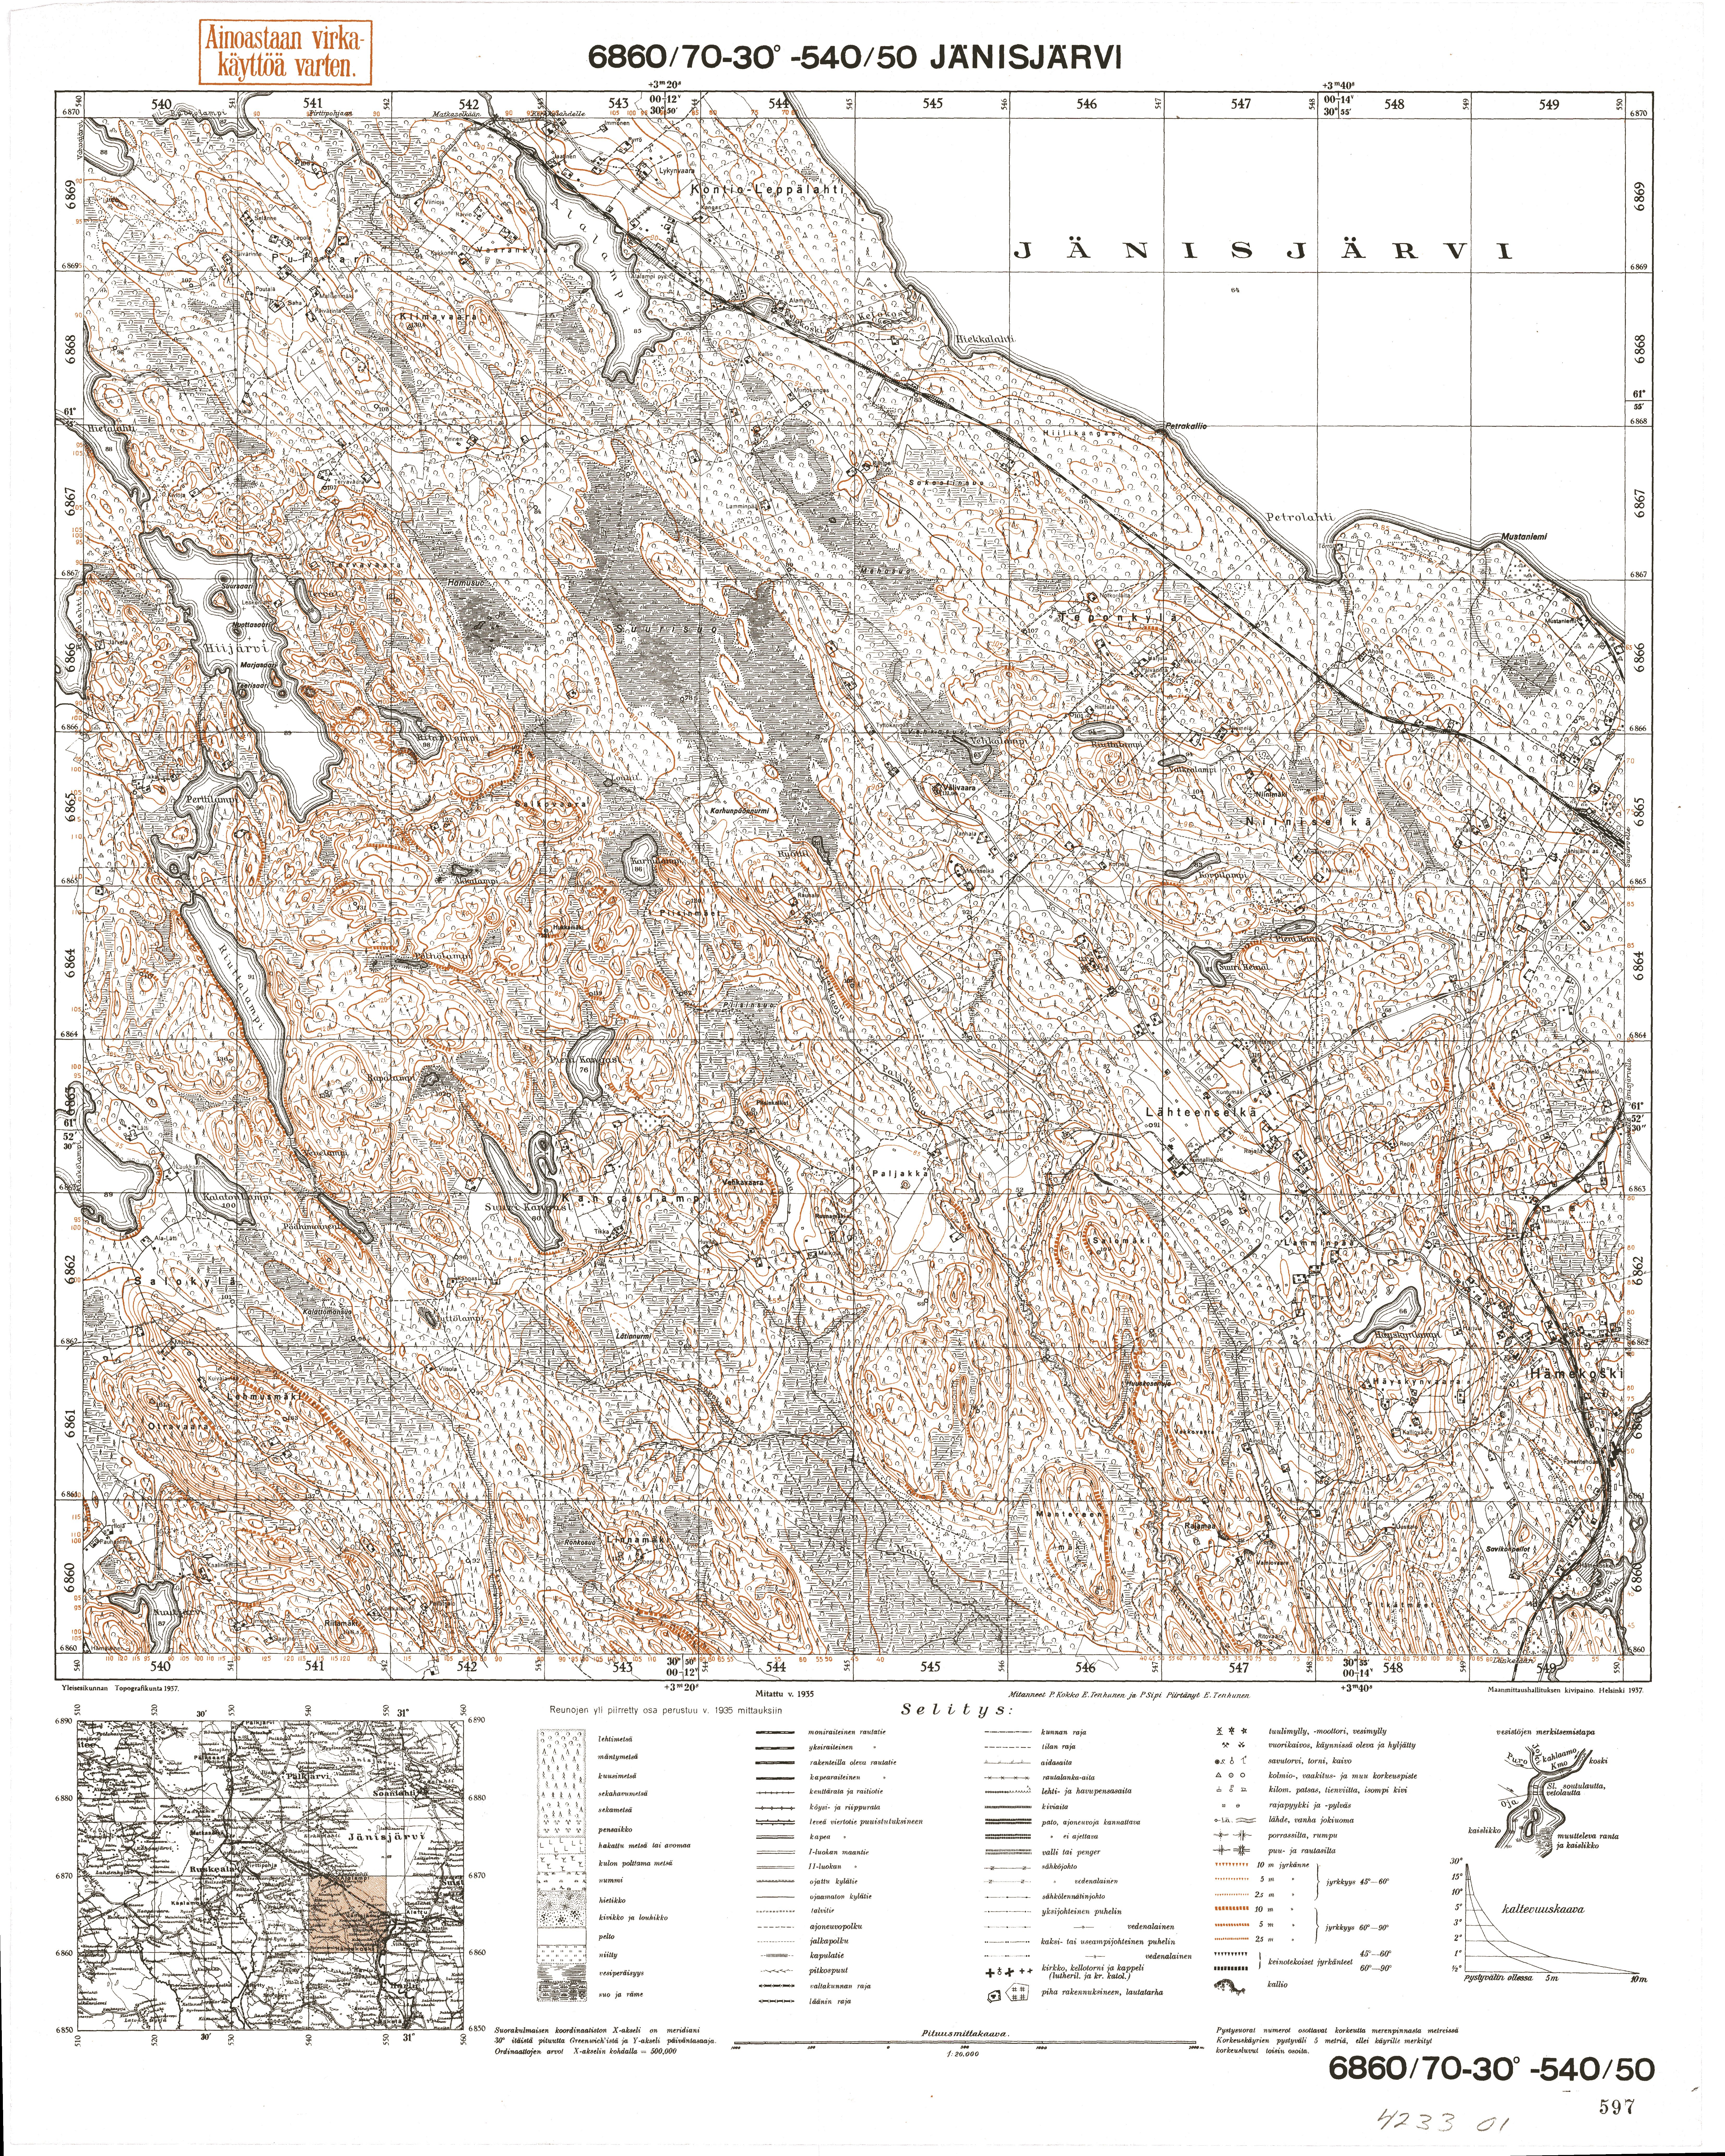 Janisjarvi Lake. Jänisjärvi. Topografikartta 423301. Topographic map from 1938